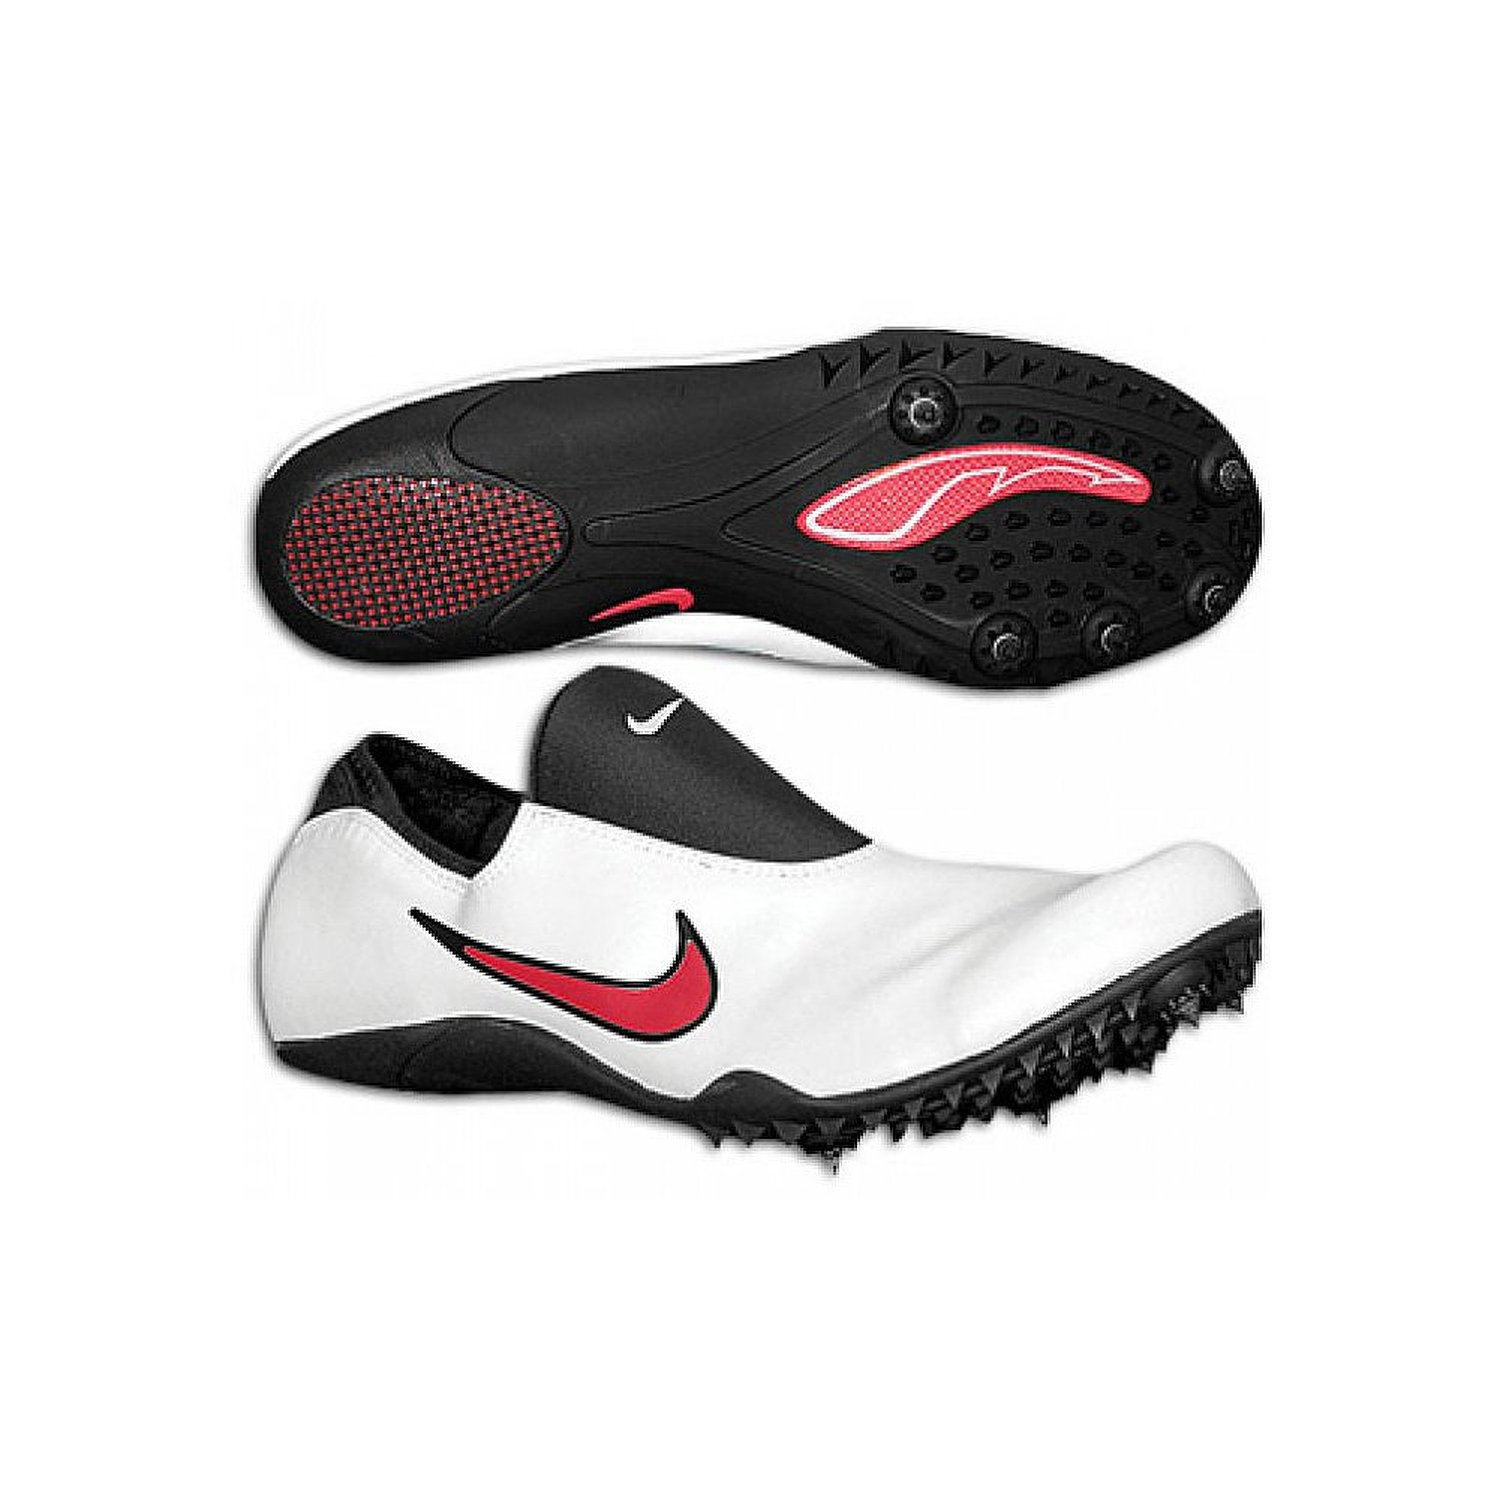 Cheap Nike Sprint Spikes, find Nike Sprint Spikes deals on